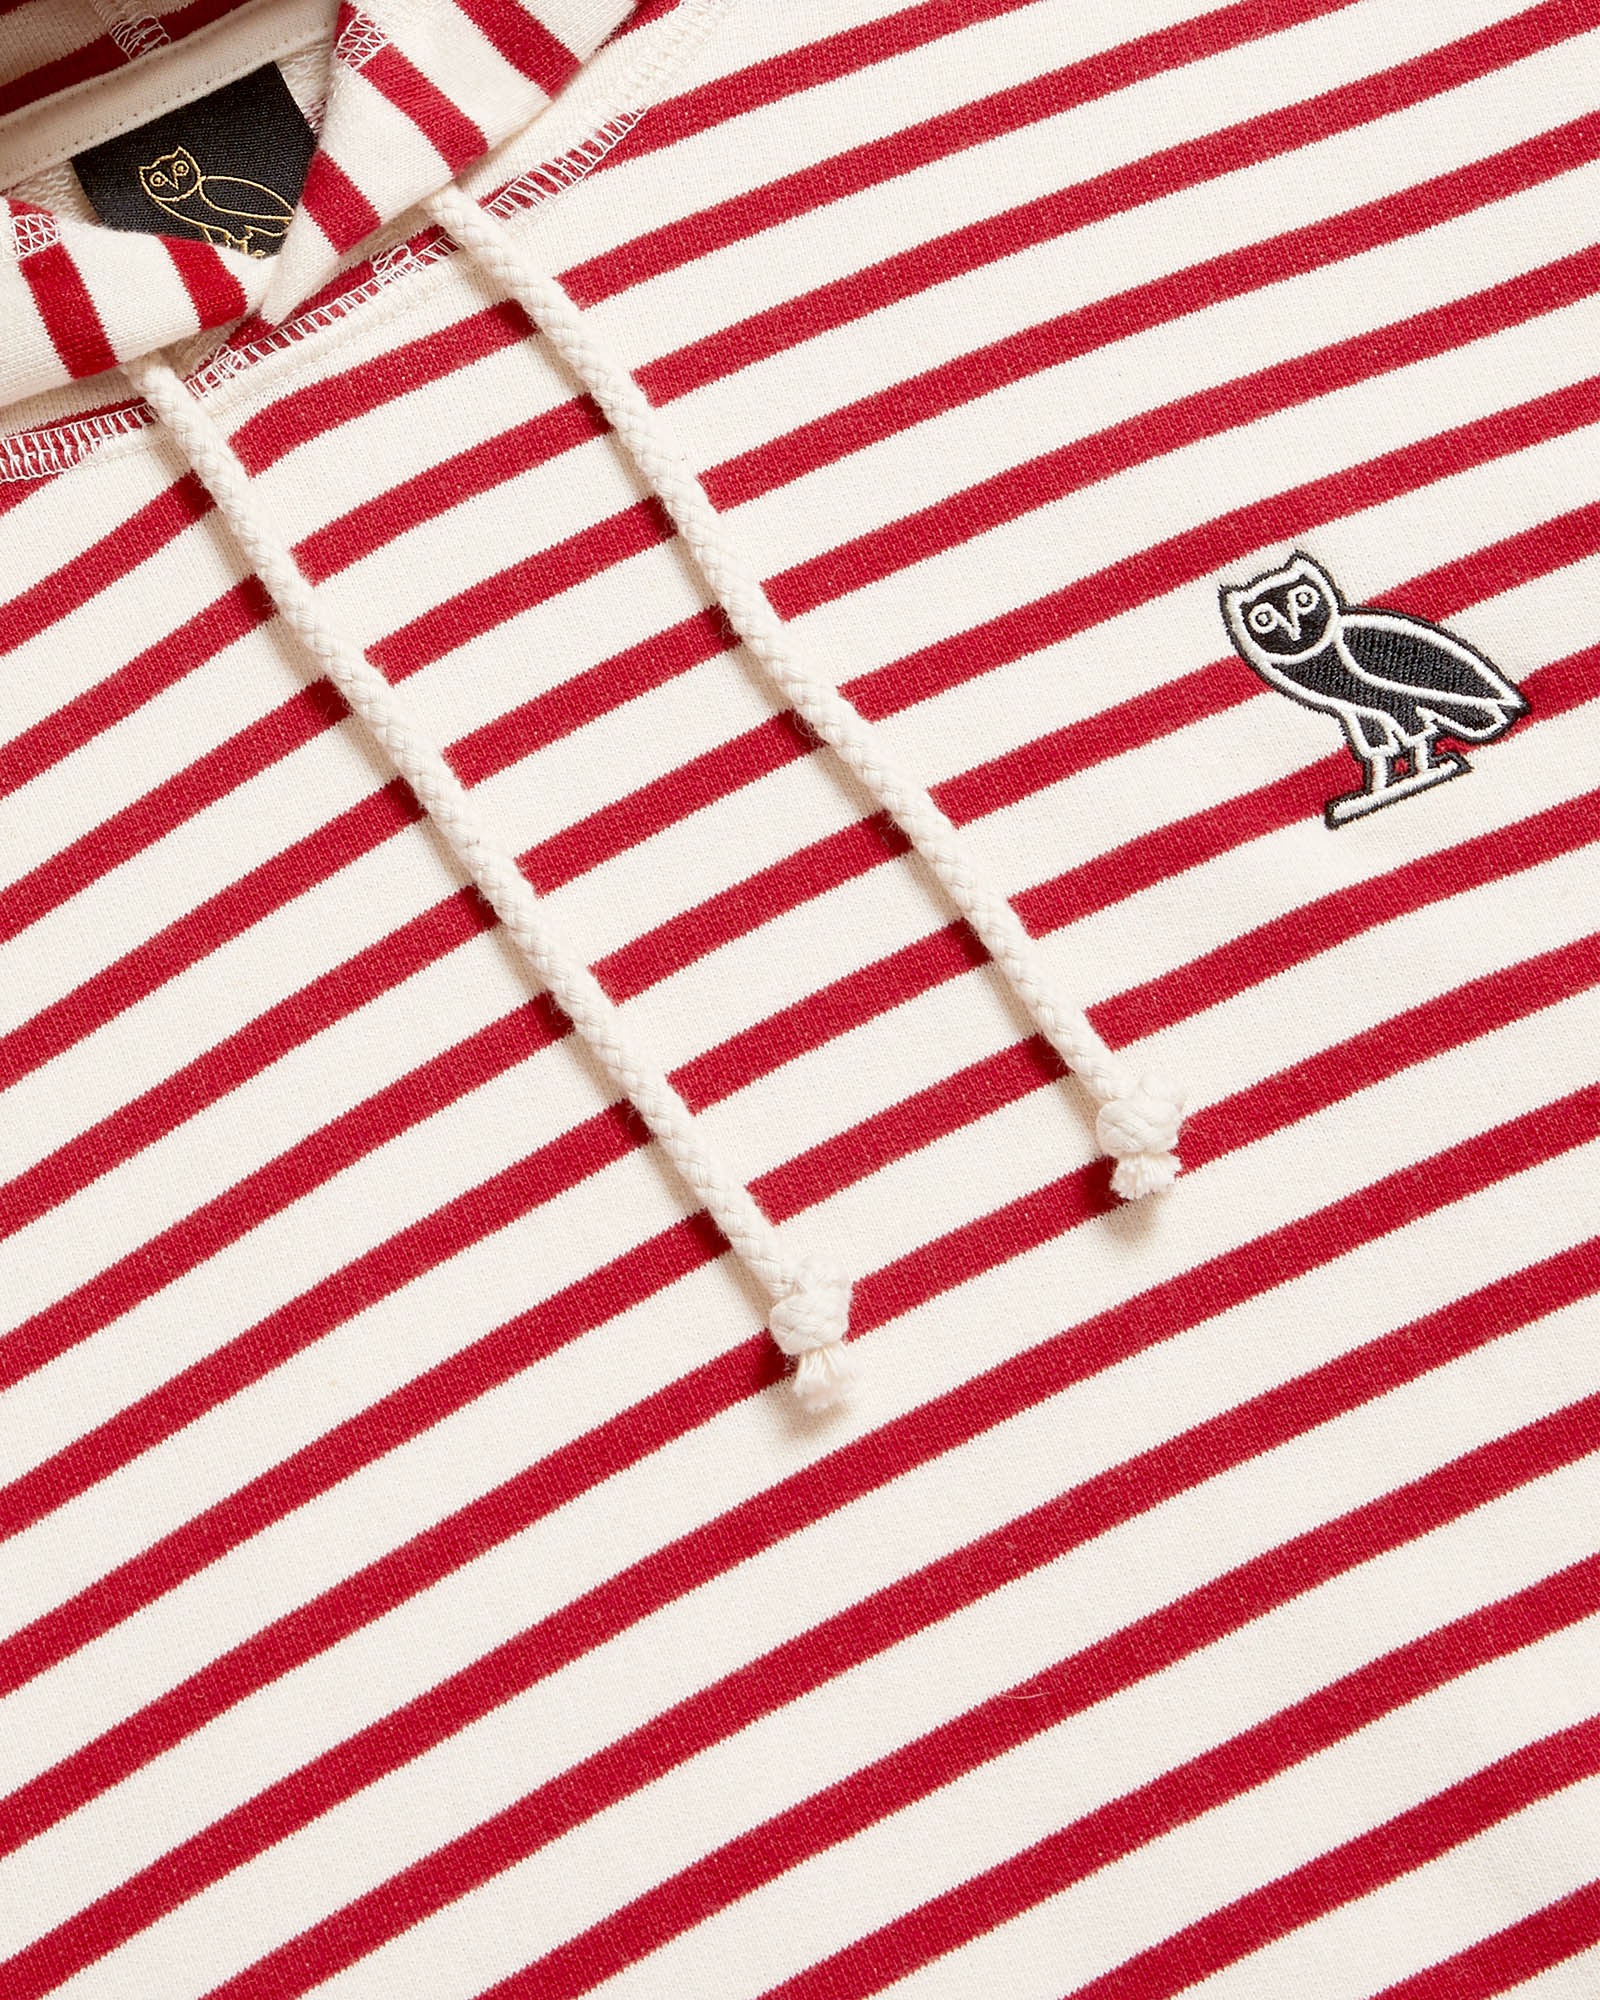 NAUTICAL STRIPE HOODIE - RED/CREAM IMAGE #4